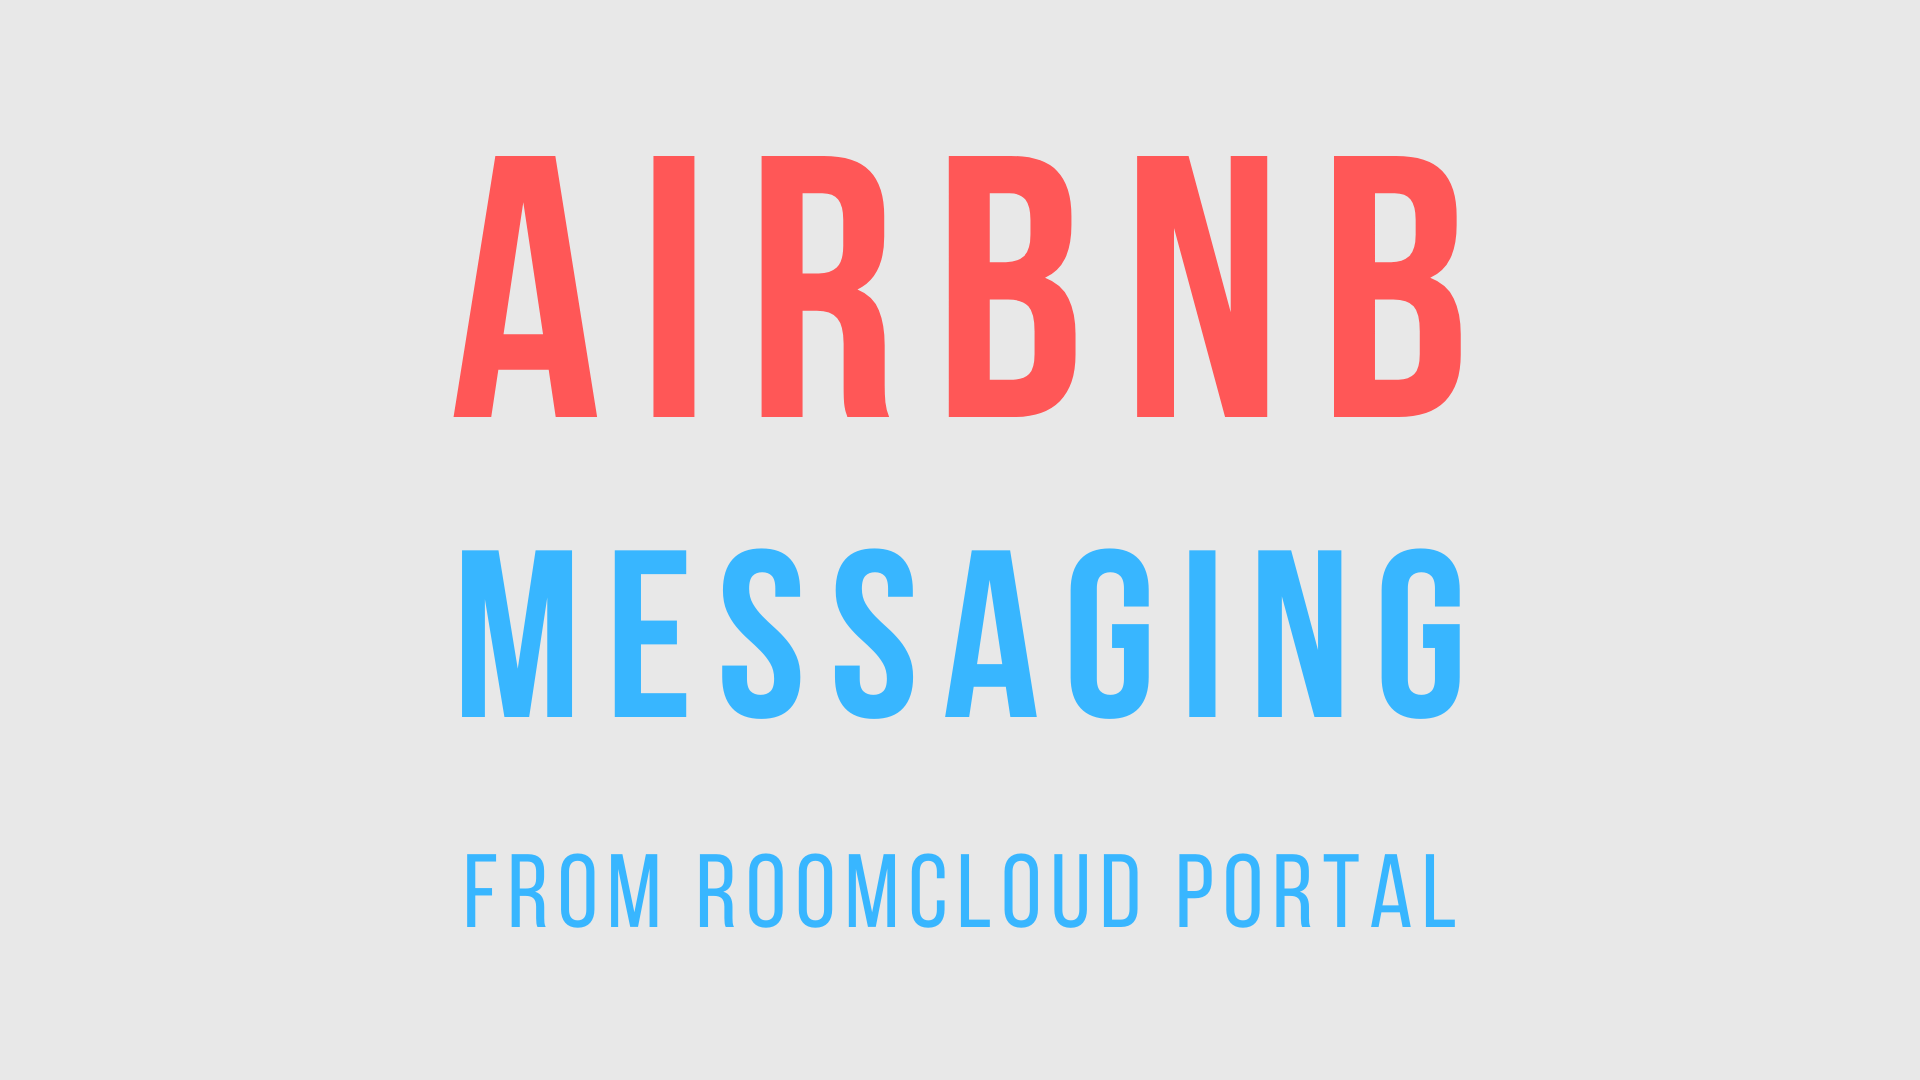 Neue Messaging-Funktionen für Airbnb in RoomCloud